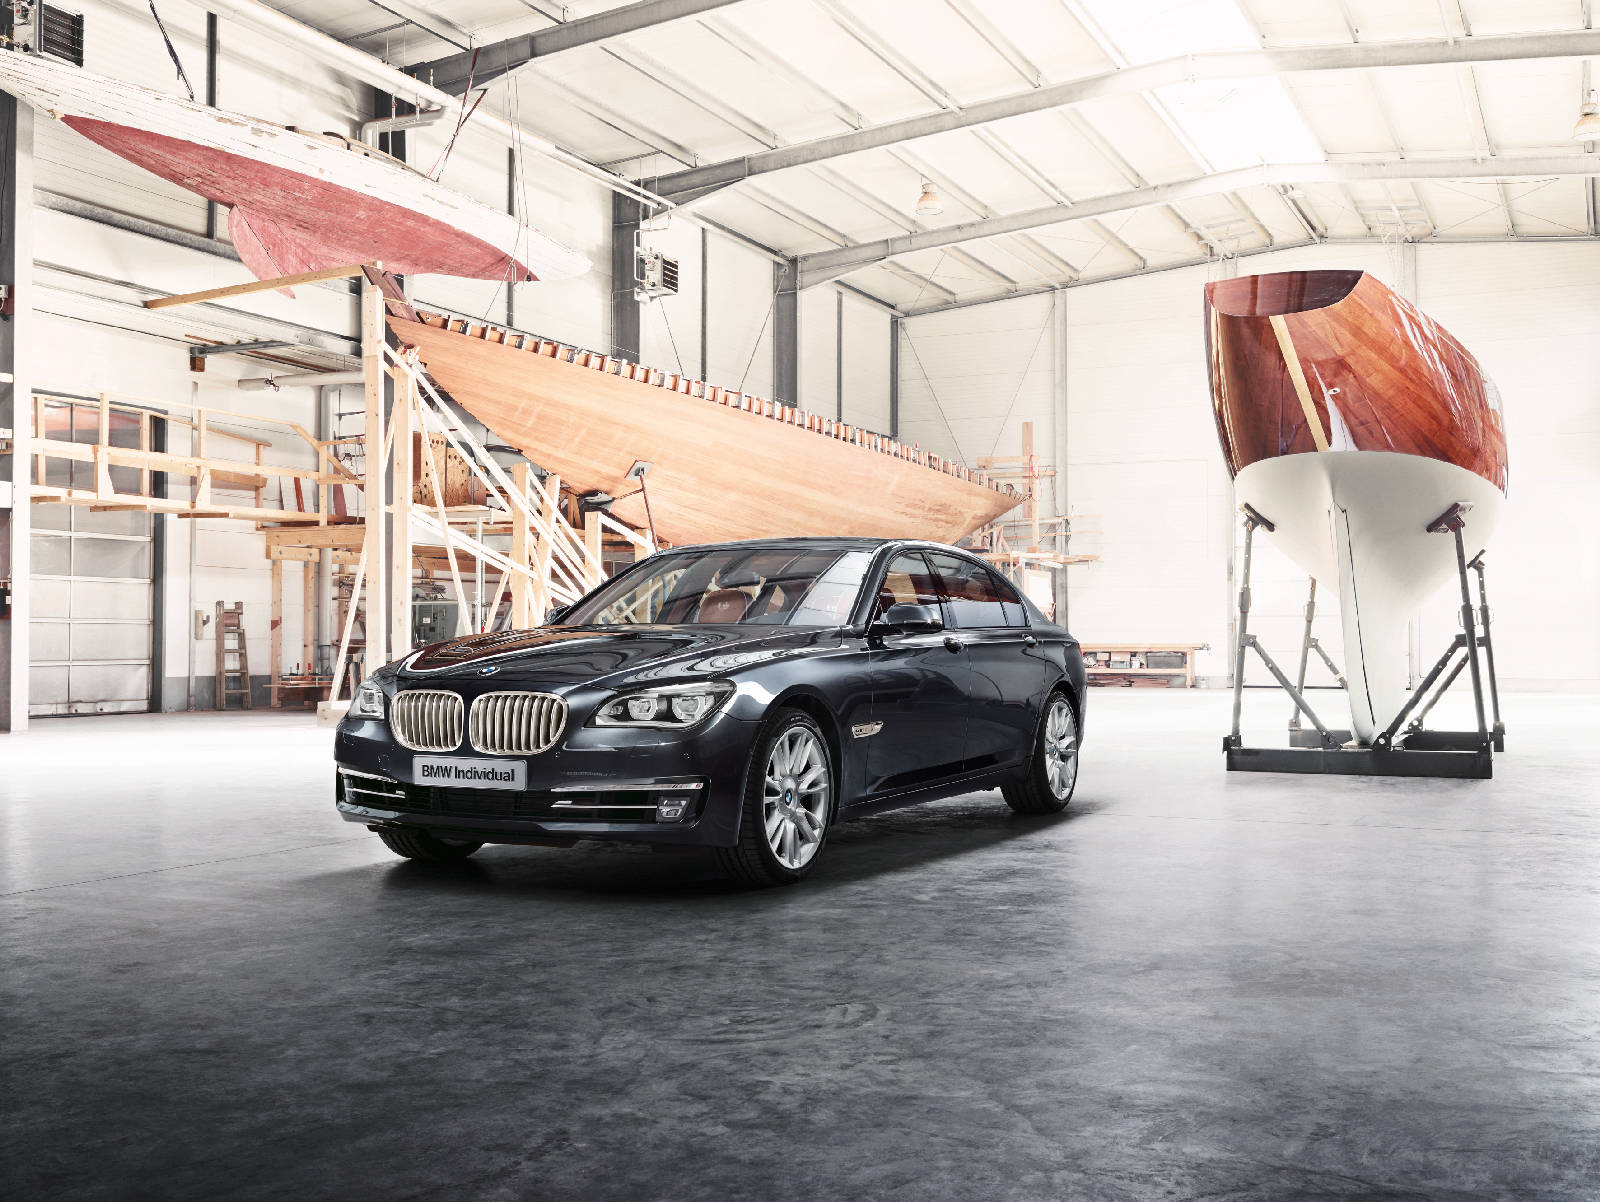 BMW Individual 760Li Sterling inspired by ROBBE and BERKING 7